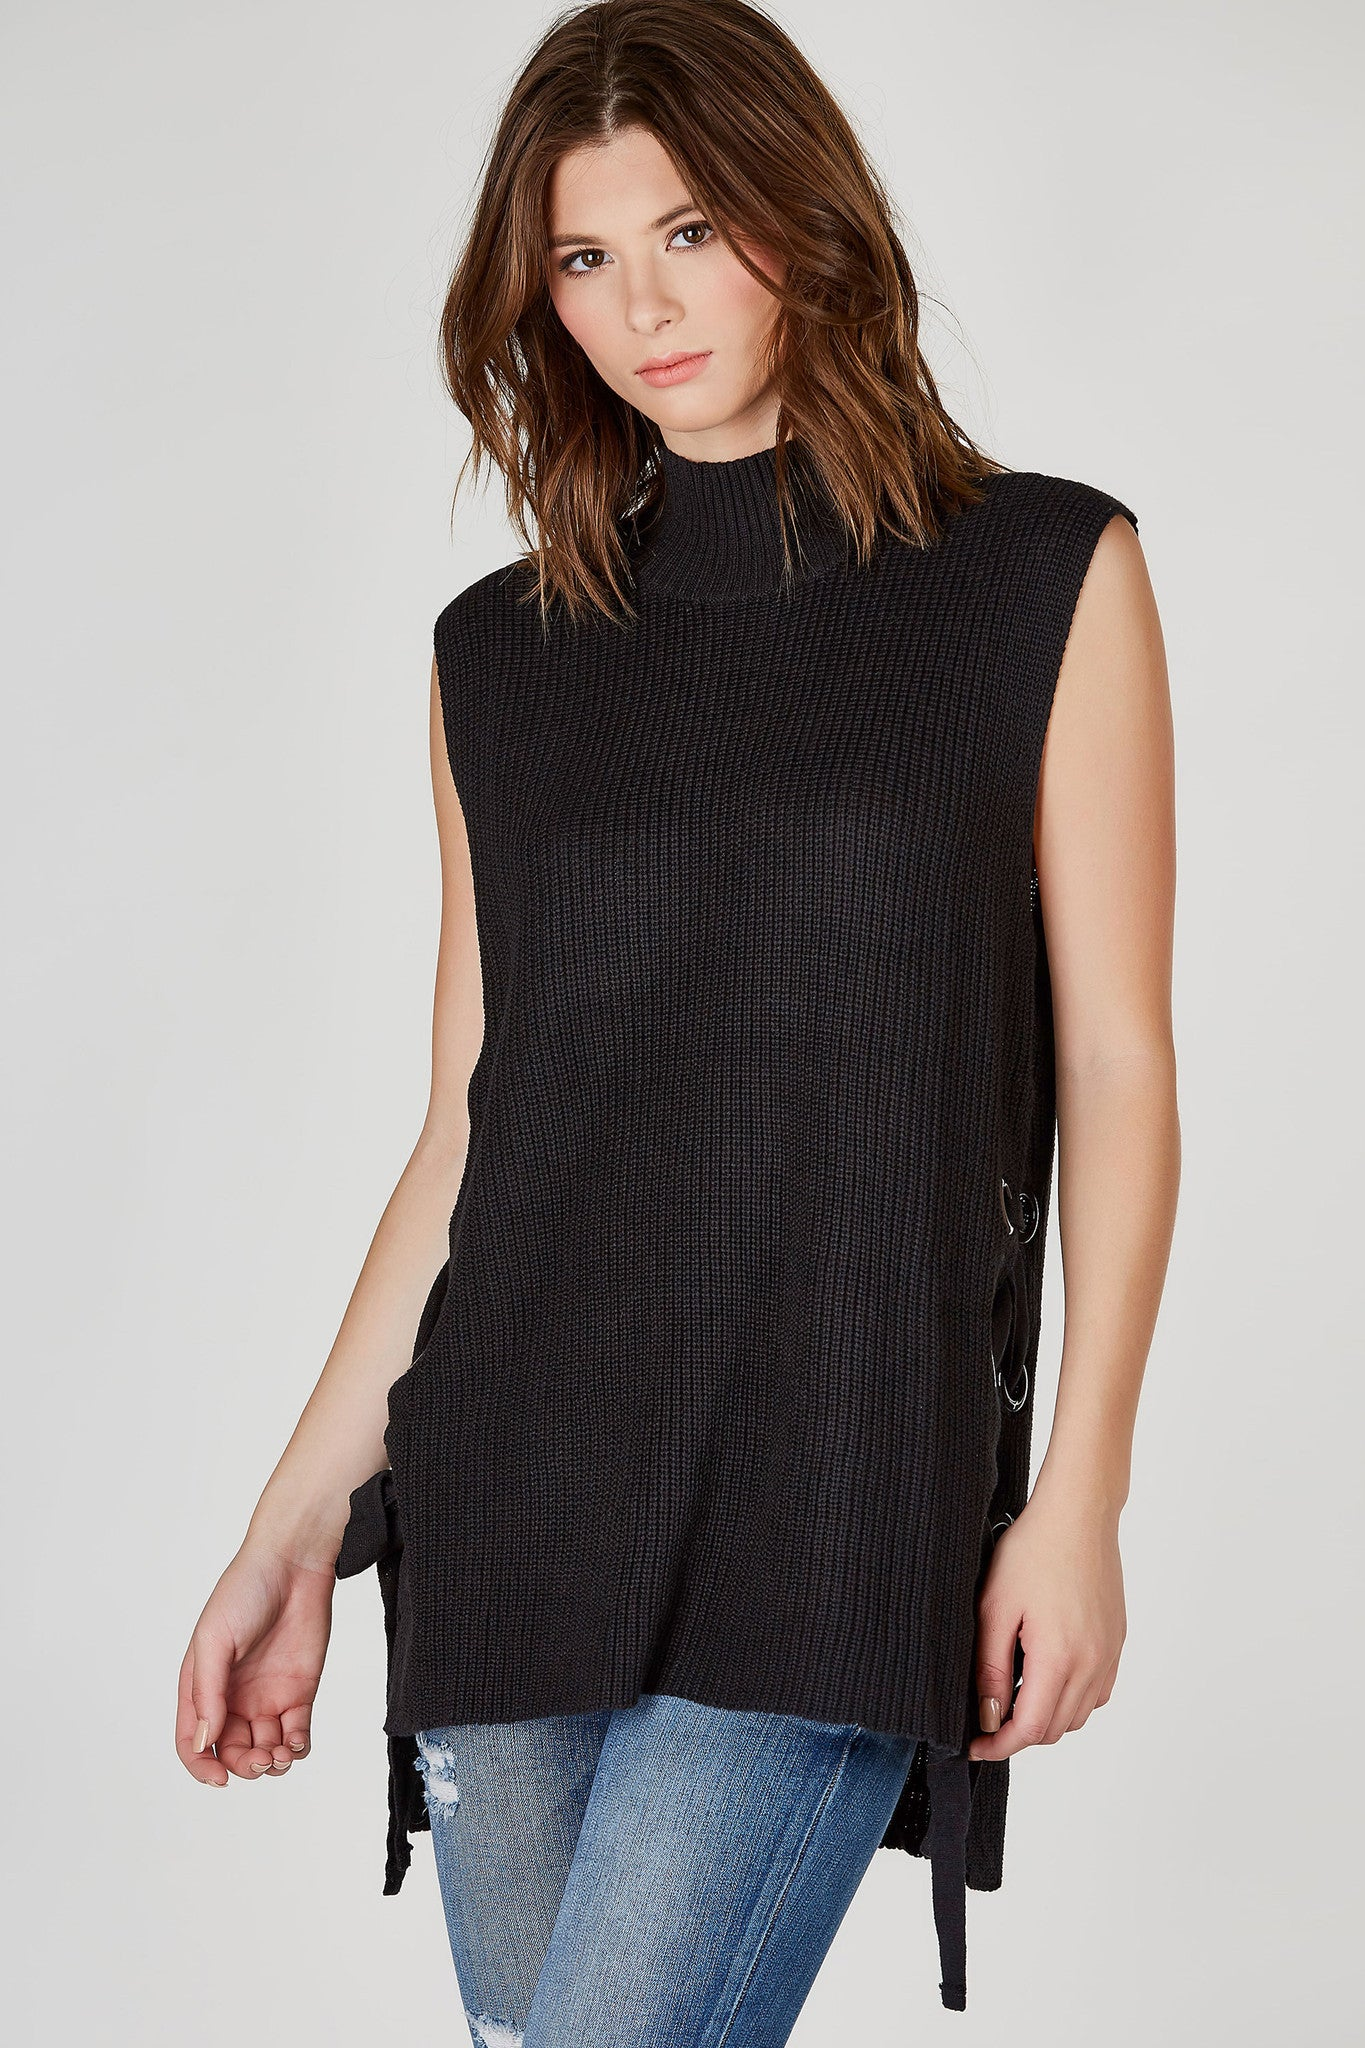 A staple piece every girl should have in their wardrobe. This awesome knit top is great to layer under light jackets for a chic transition into Fall. High, ribbed mock neck with casual sleeveless design. Sides feature trendy lace up detailing for added personality. Pair with your favorite skinny jeans and ankle boots!